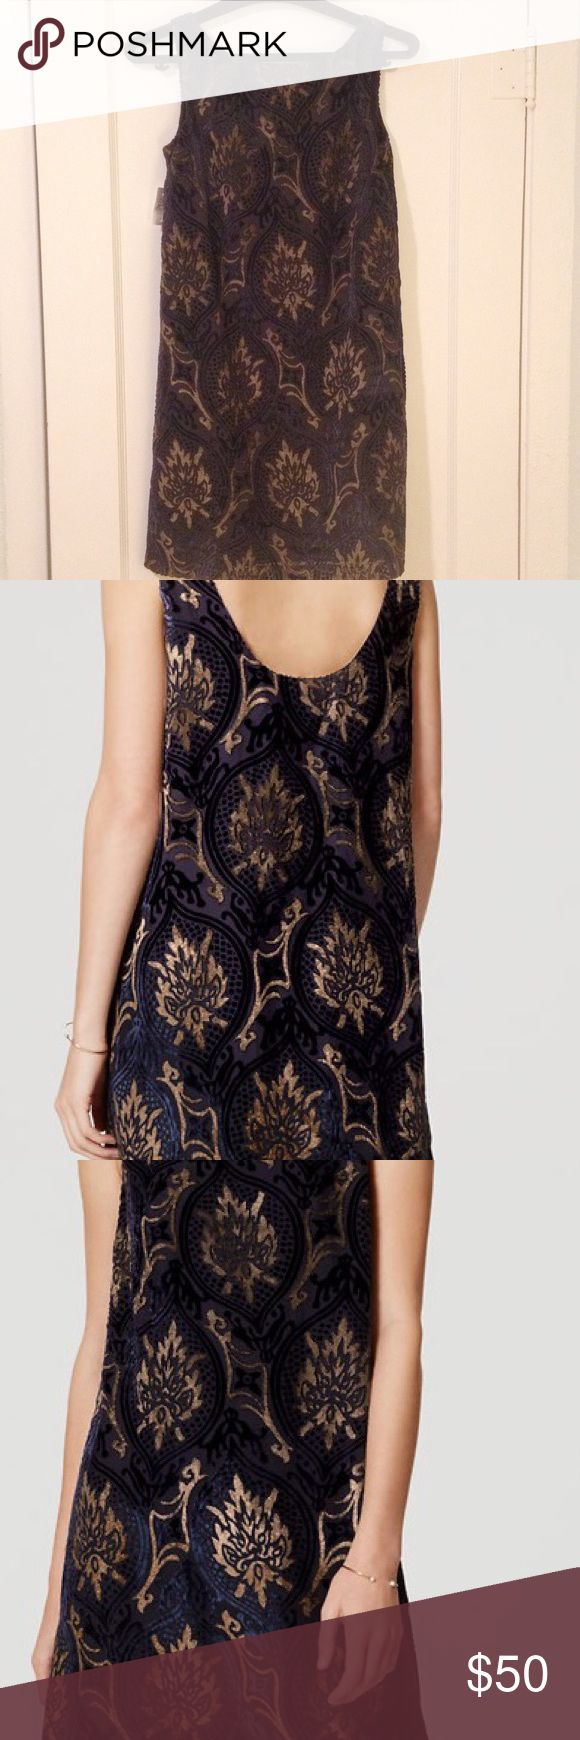 NWT LOFT Mystic Velvet Swing Style Dress Beautiful navy swing style dress with velvet design, boatneck, and swoop back. Perfect for any night out, wedding or cocktail party! LOFT Dresses Mini